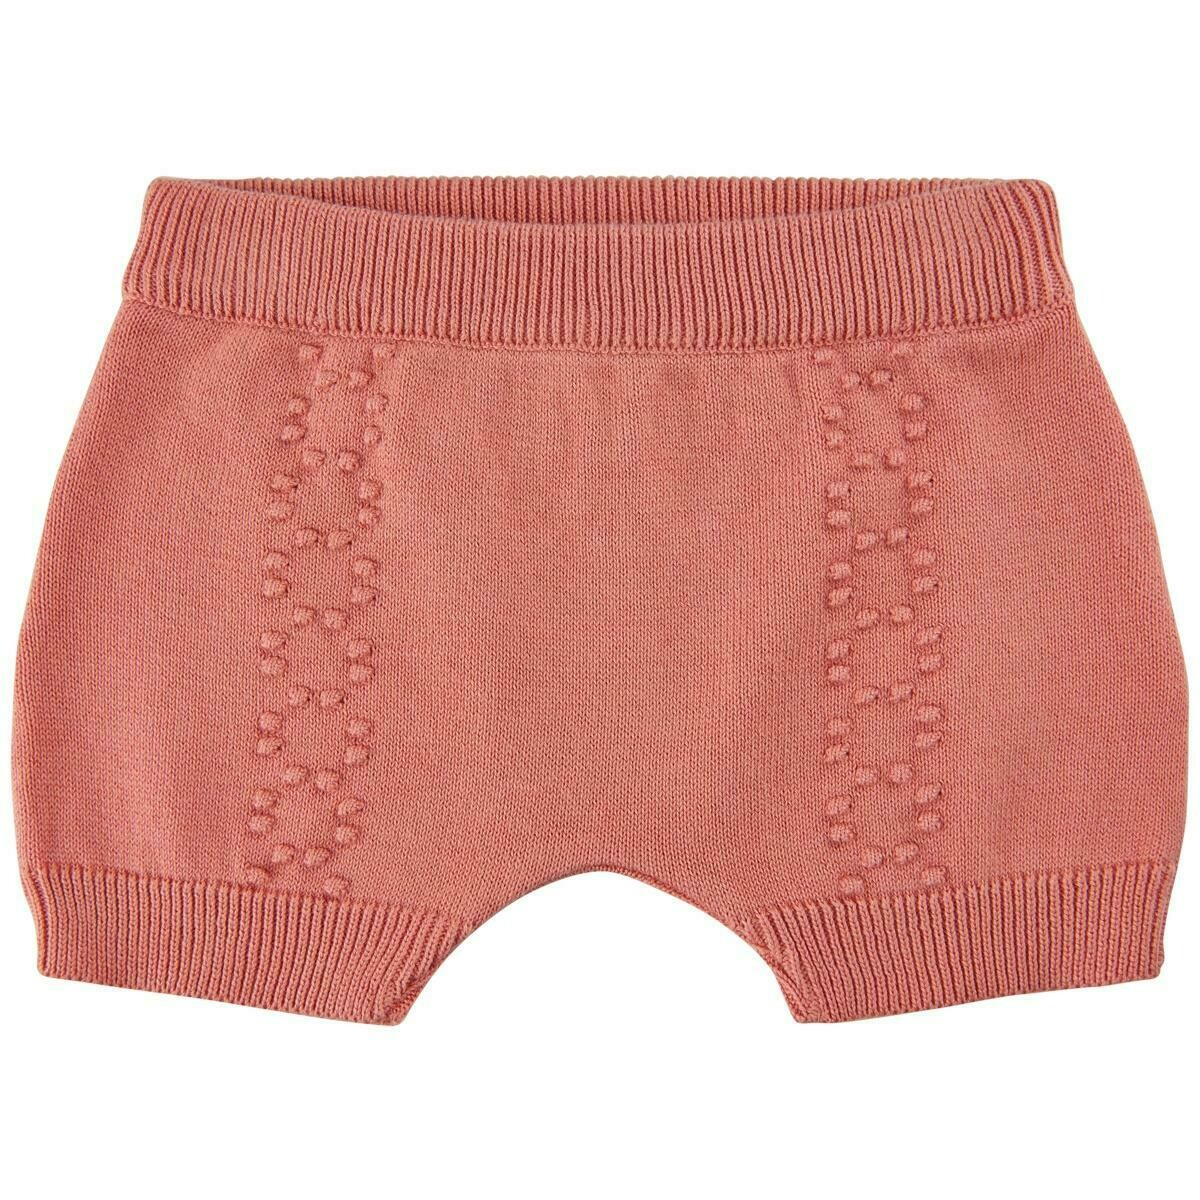 Minymo-Lobster Bisque Shorts 1468